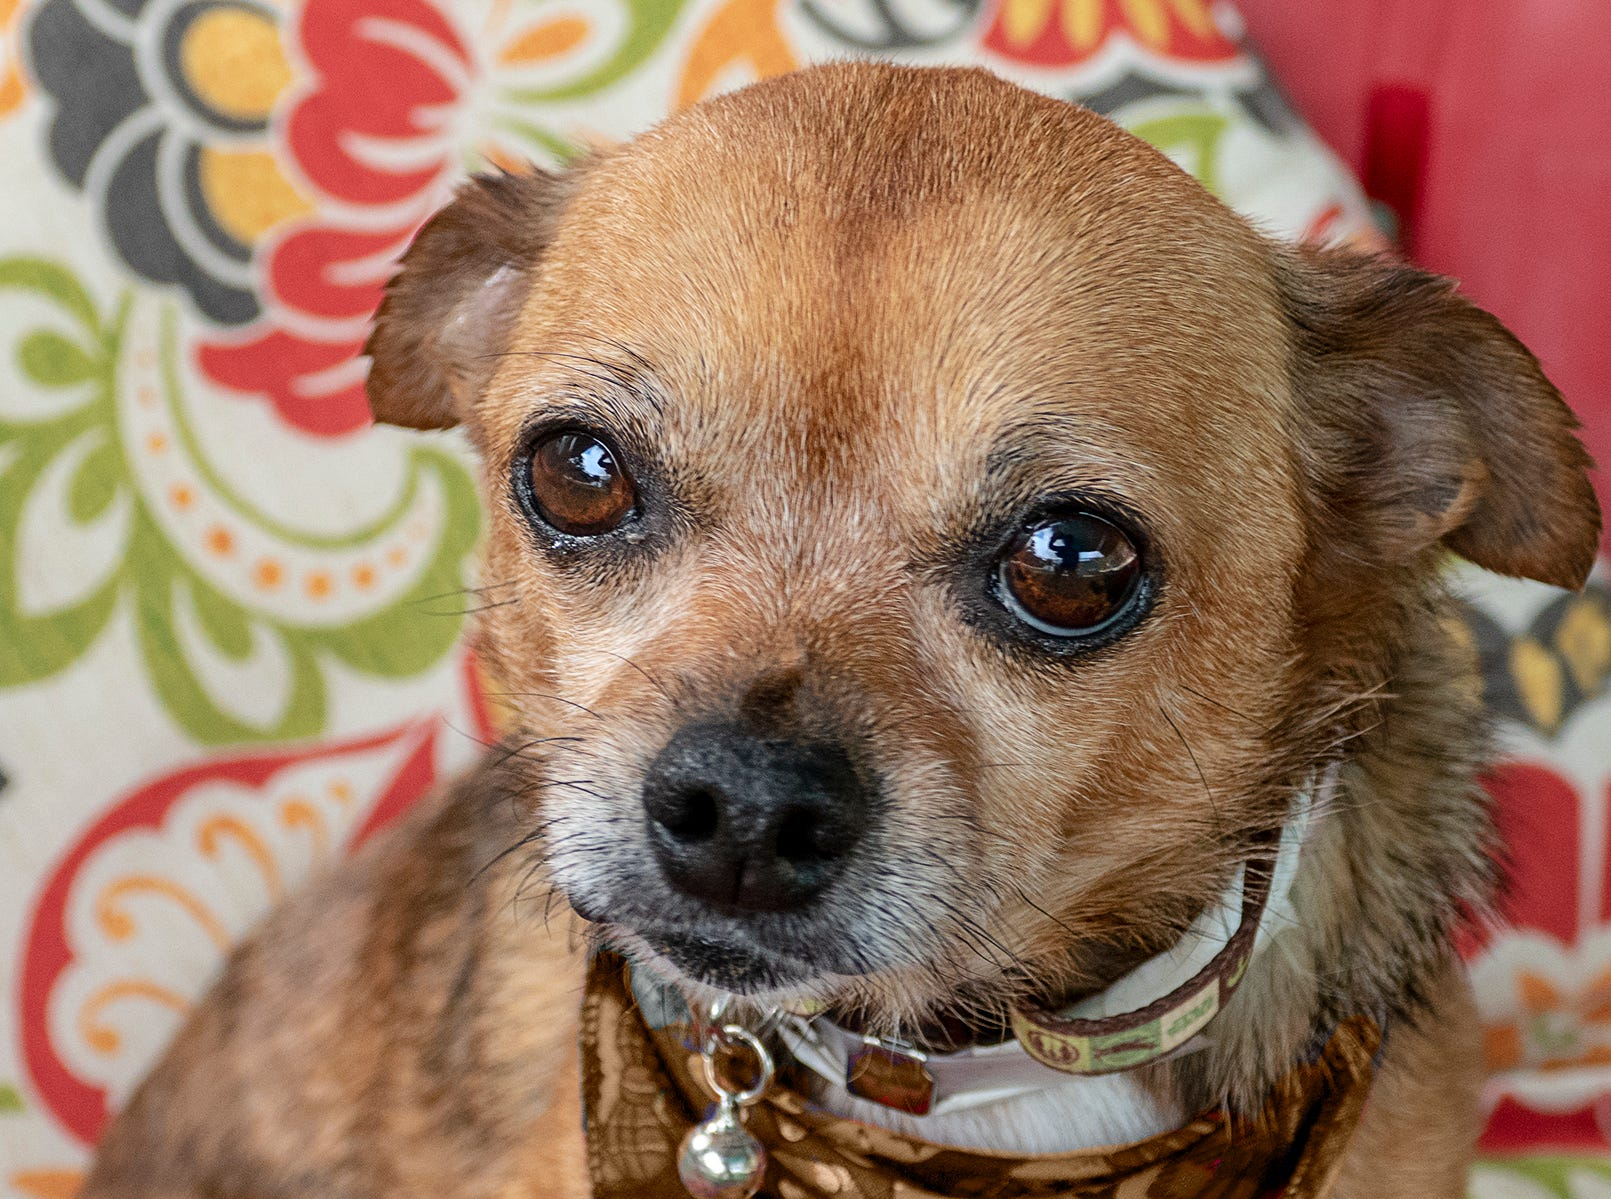 Senior Chihuahua Gizmo, age 12, is all around perfection with the many visitors to the care center. He does beautifully with noises of all sorts and is very friendly with kids who are excited to make his acquaintance! He is a lovely combination of spunky when out for a walk but loves lap time, too. To adopt Gizmo request A5214520. The Agoura Hills Animal Care Center is at 29525 Agoura Road, Agoura Hills. Occasionally pets have already been adopted. To check availability, call 818-991-0071 or visit animalcare.lacounty.gov.